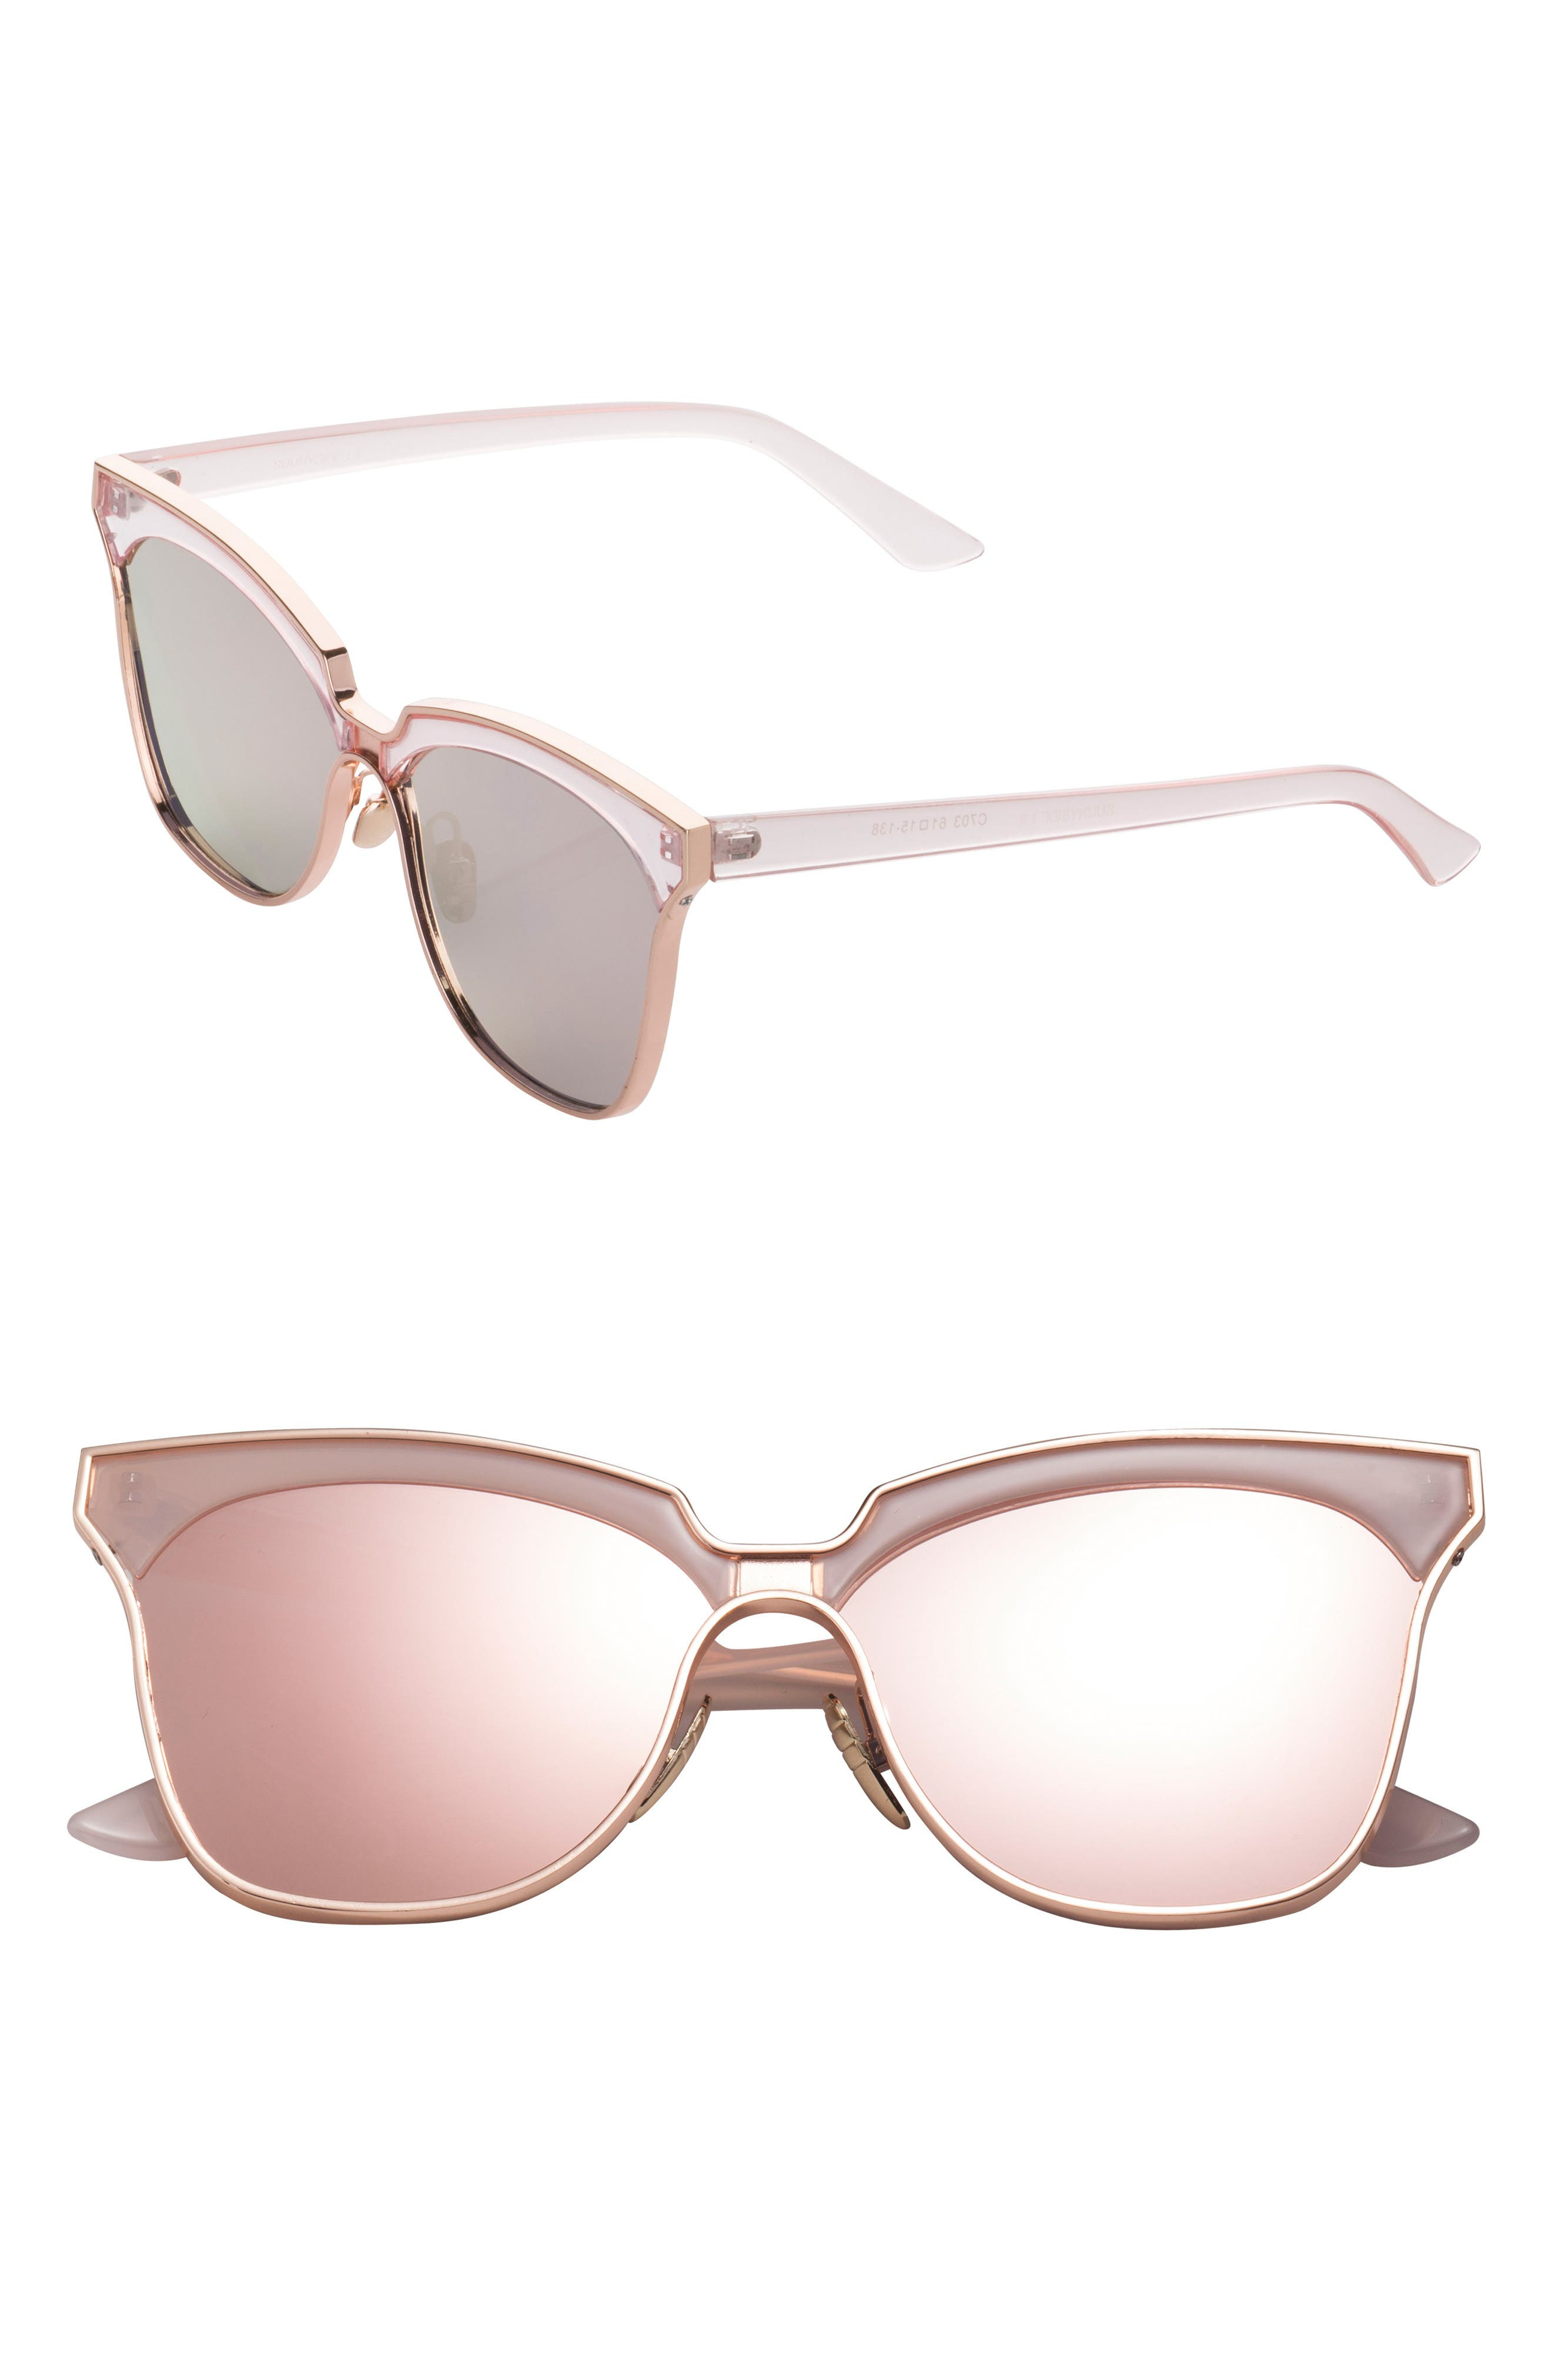 61mm Mirorred Butterfly Sunglasses,                         Main,                         color, 650